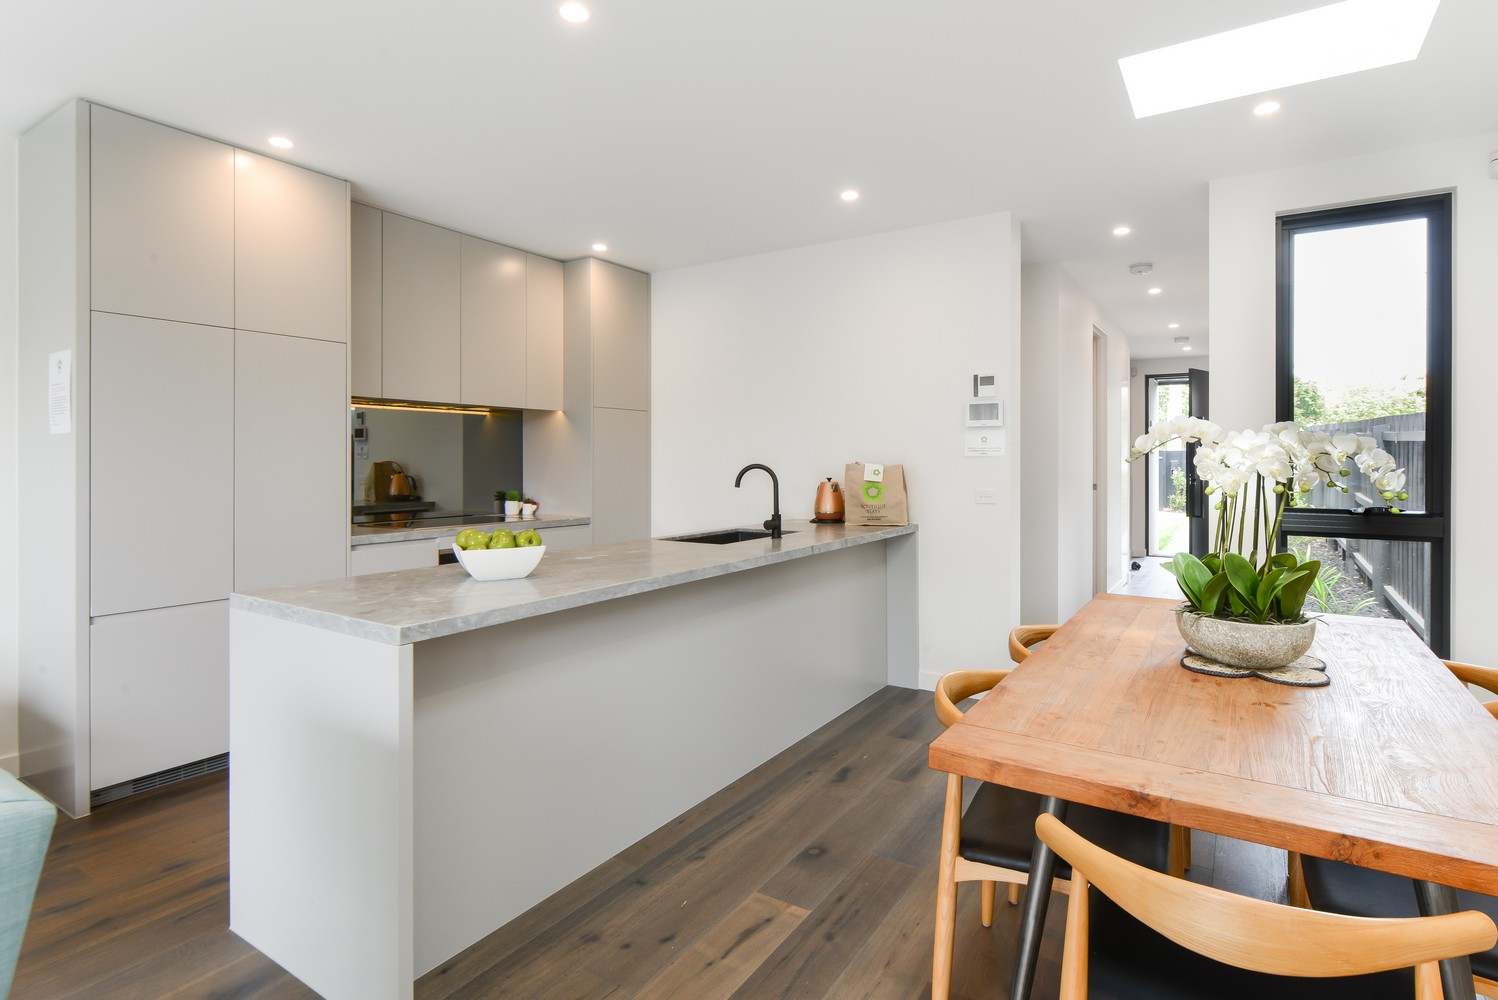 Kitchen at Victoria Road Townhouse